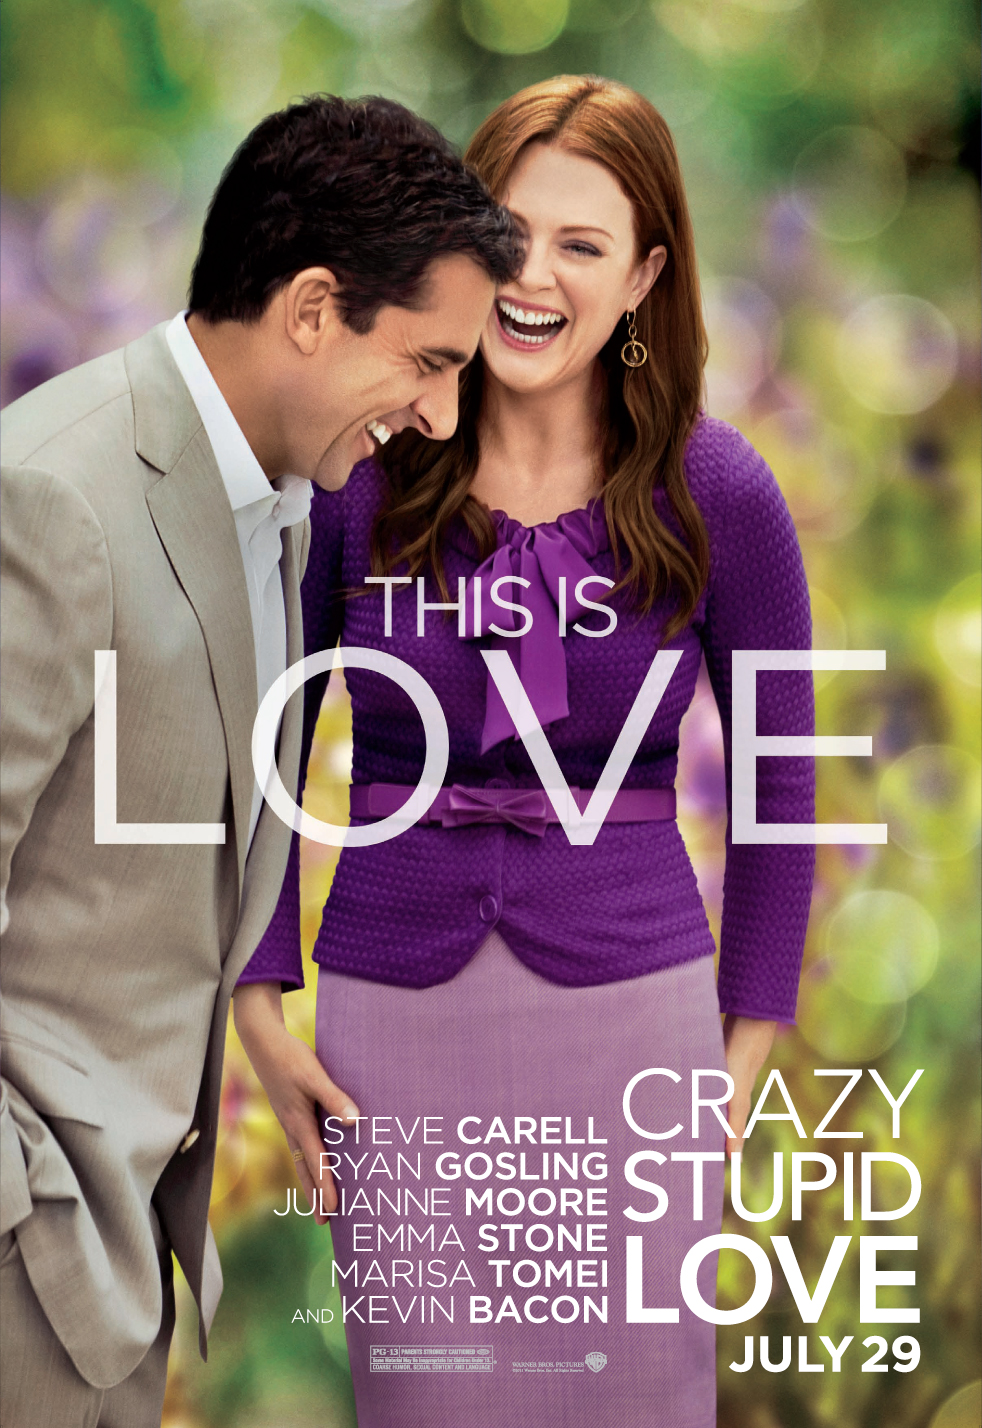 At the movies: *Crazy, Stupid, Love*